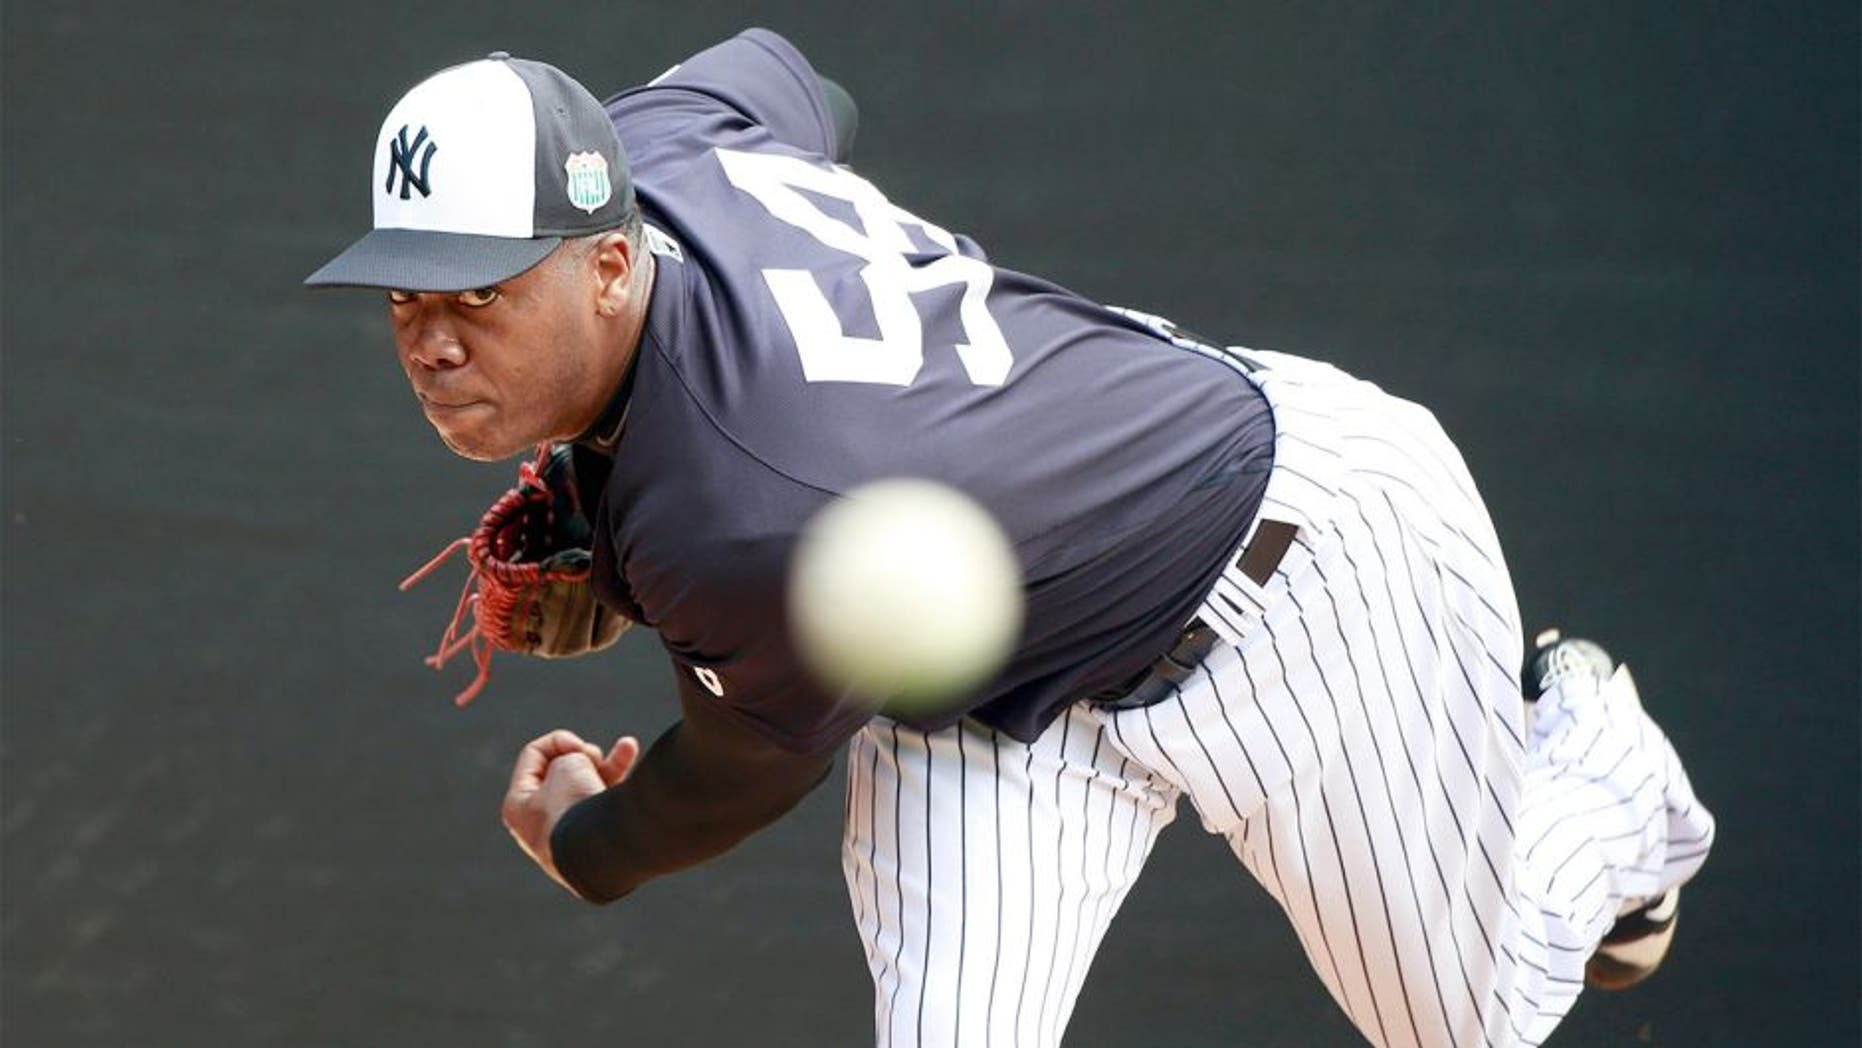 Feb 23, 2016; Tampa, FL, USA; New York Yankees relief pitcher Aroldis Chapman (54) pitches in the bullpen at George M. Steinbrenner Field. Mandatory Credit: Kim Klement-USA TODAY Sports